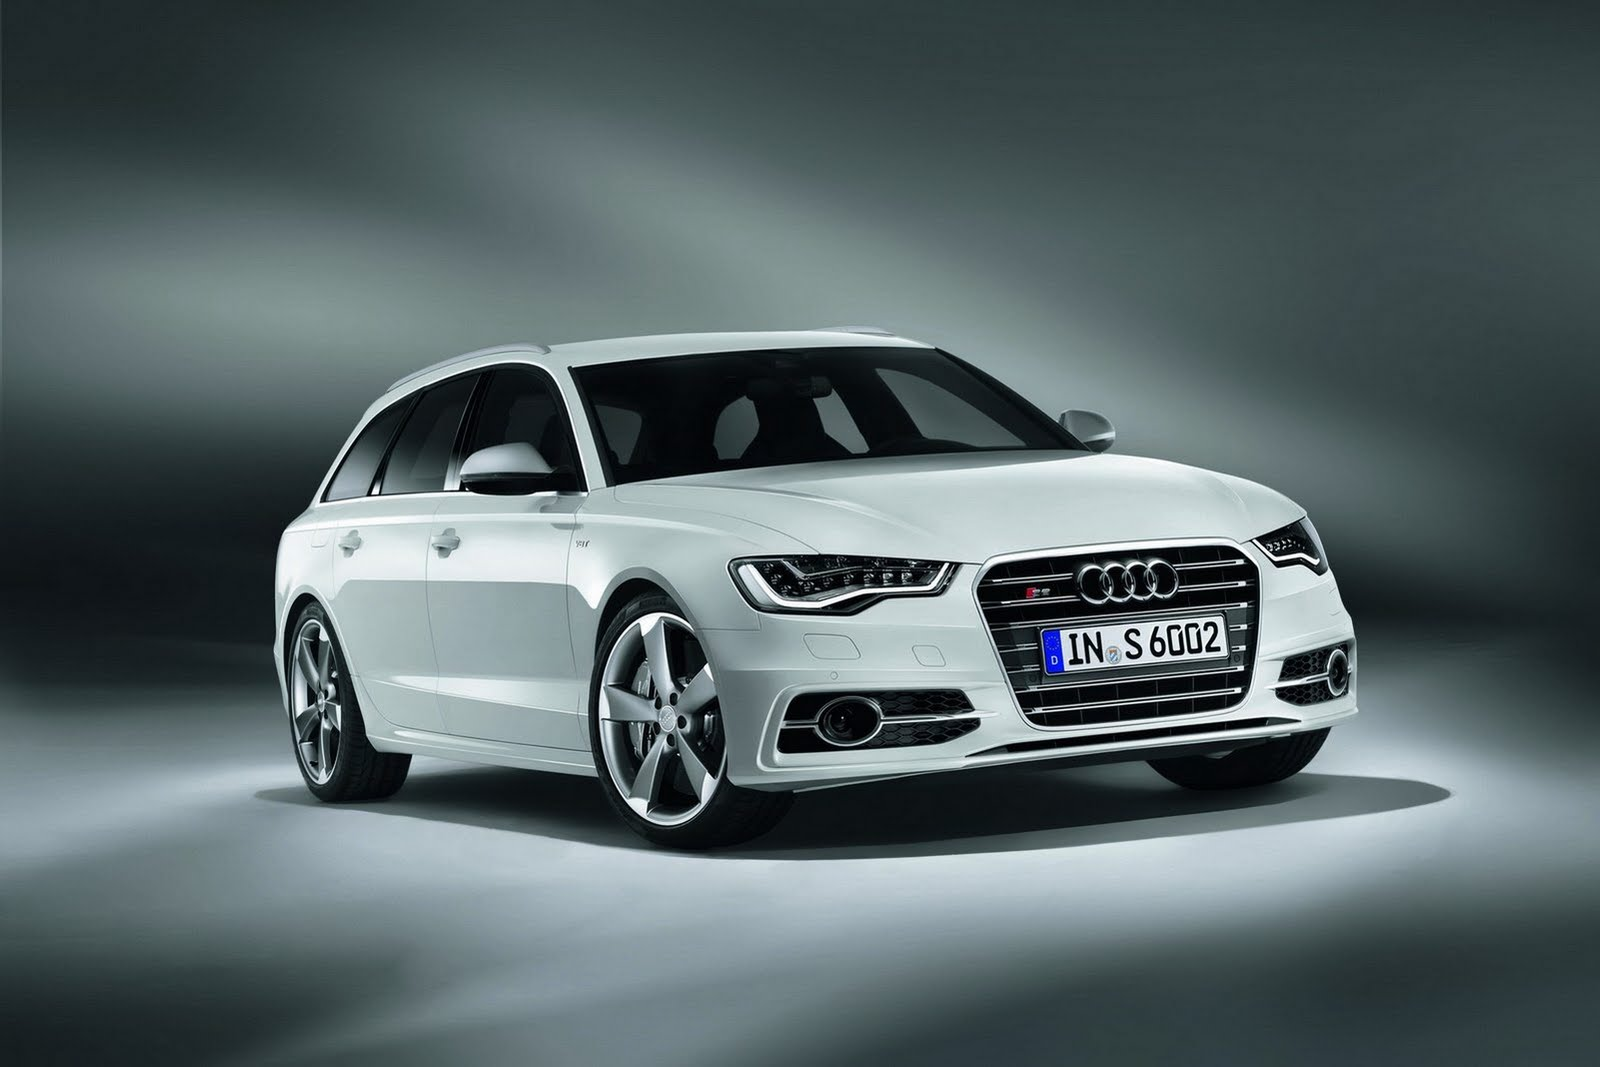 2012 audi s6 avant top speed. Black Bedroom Furniture Sets. Home Design Ideas